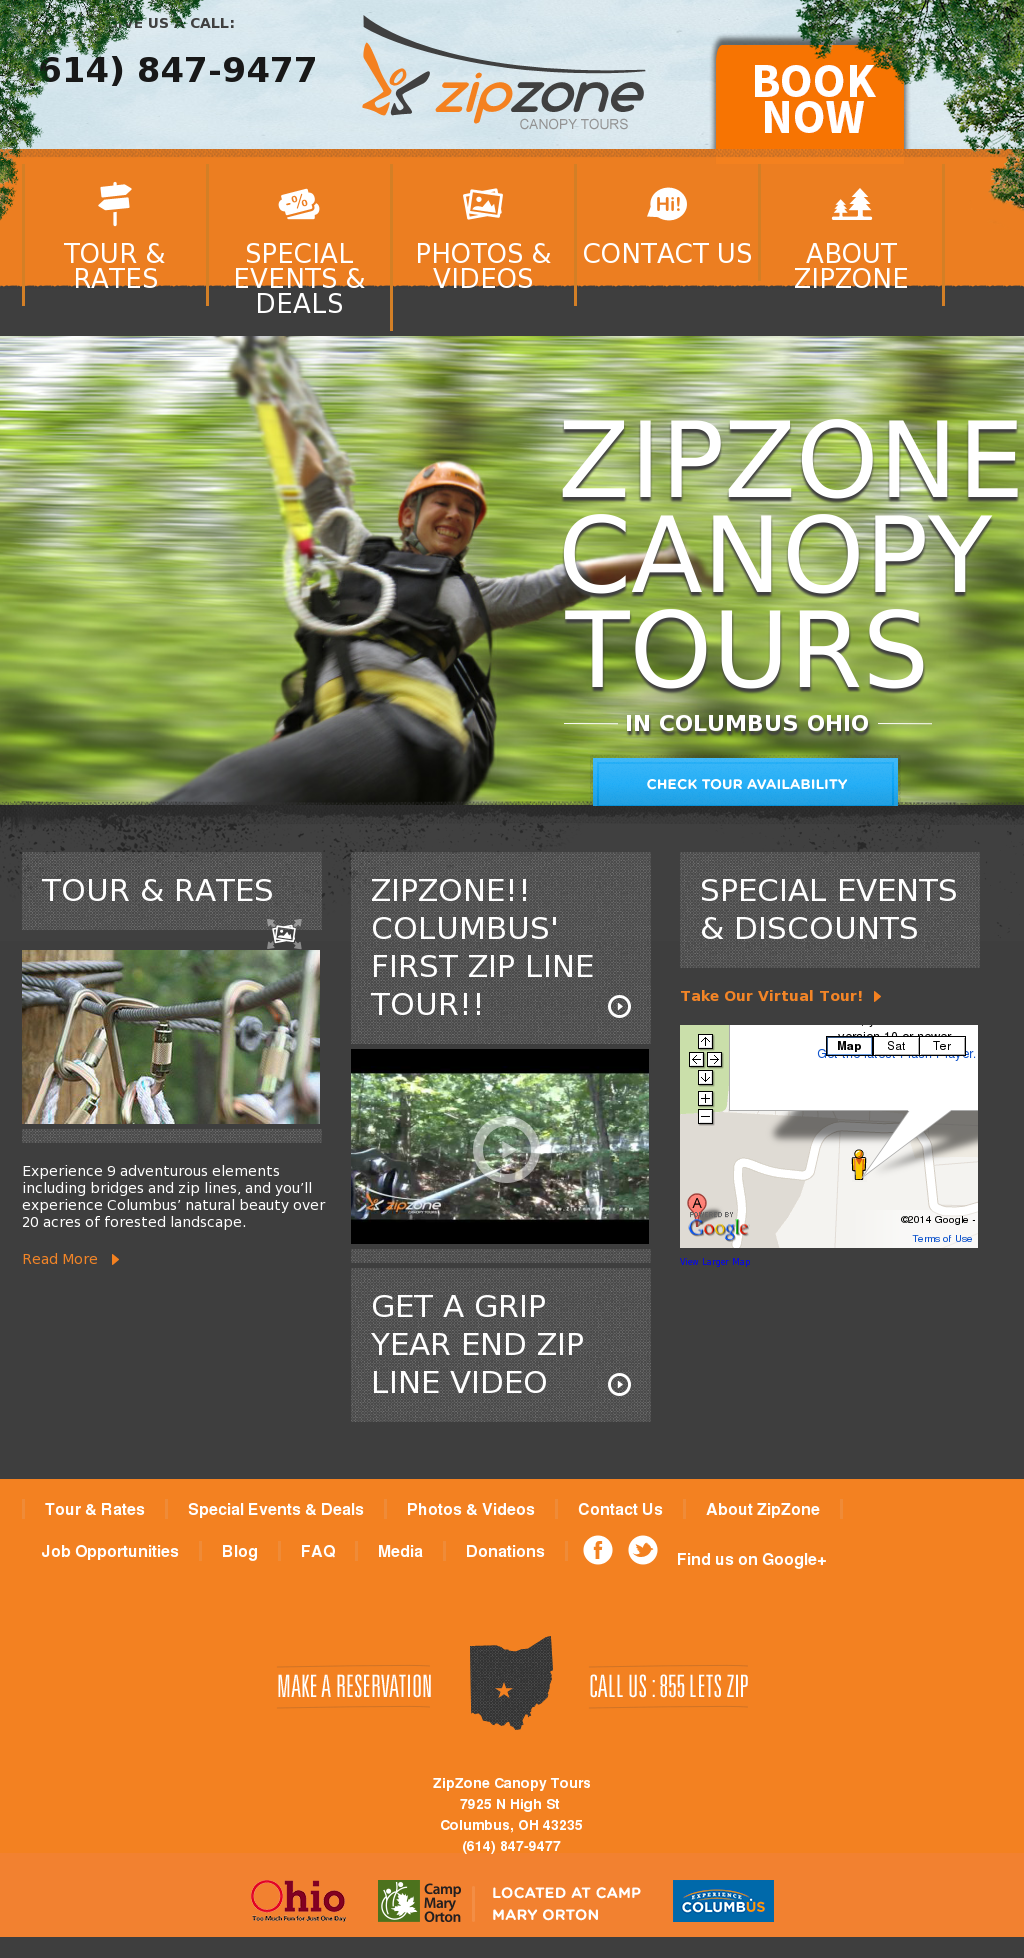 Zipzone Canopy Tours Columbus Hotels And Tours Image